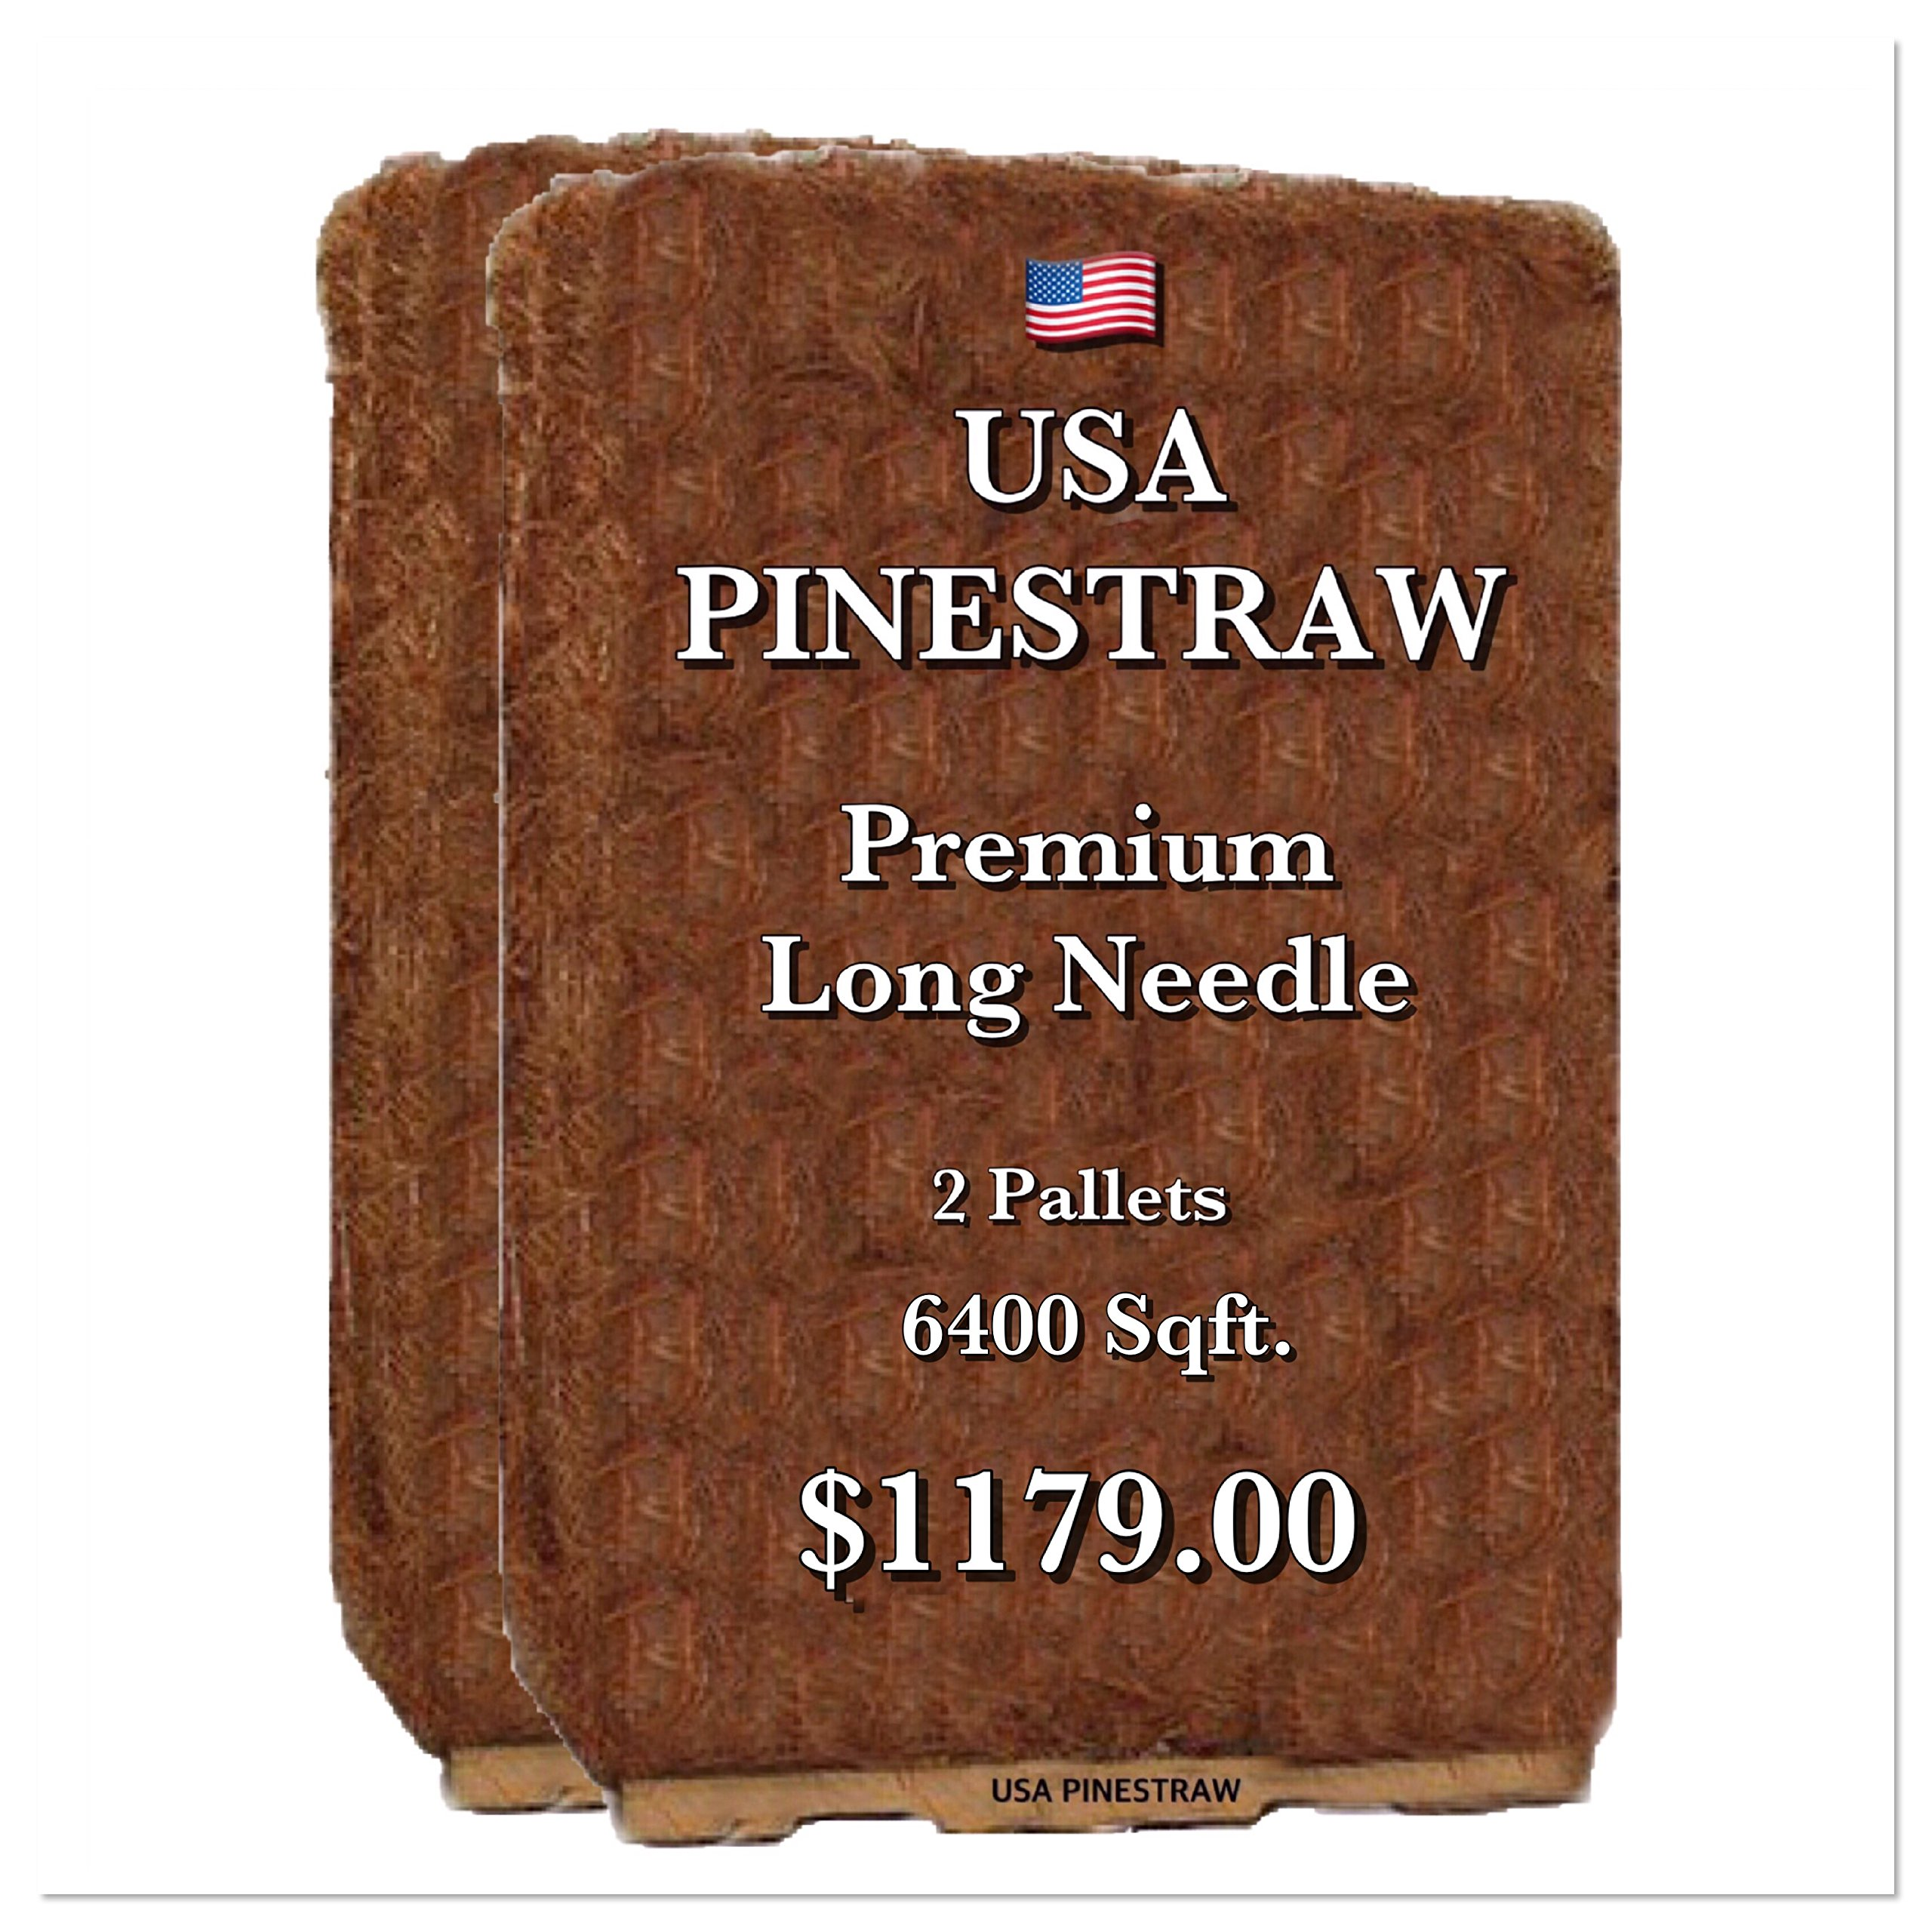 Premium Pine Straw Mulch - 14 Inch Long Needle - 2 pallets covers 6400 Sqft.